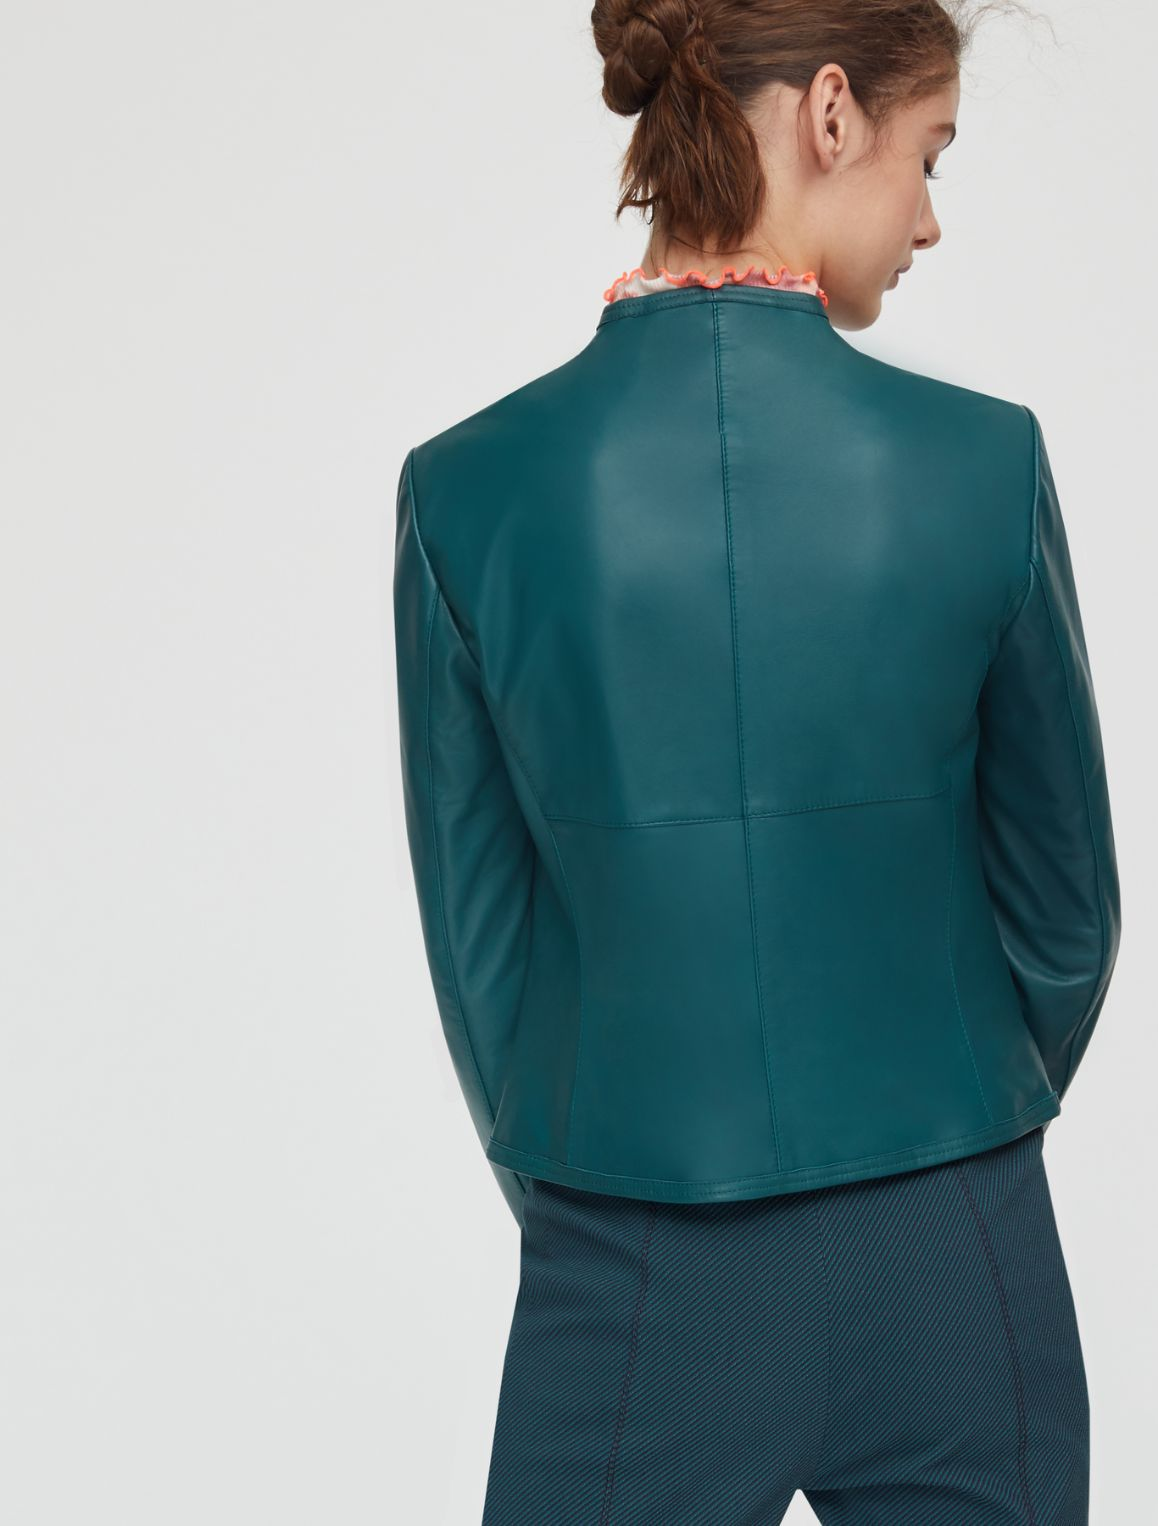 DEPONETE Leather jacket emerald green 2